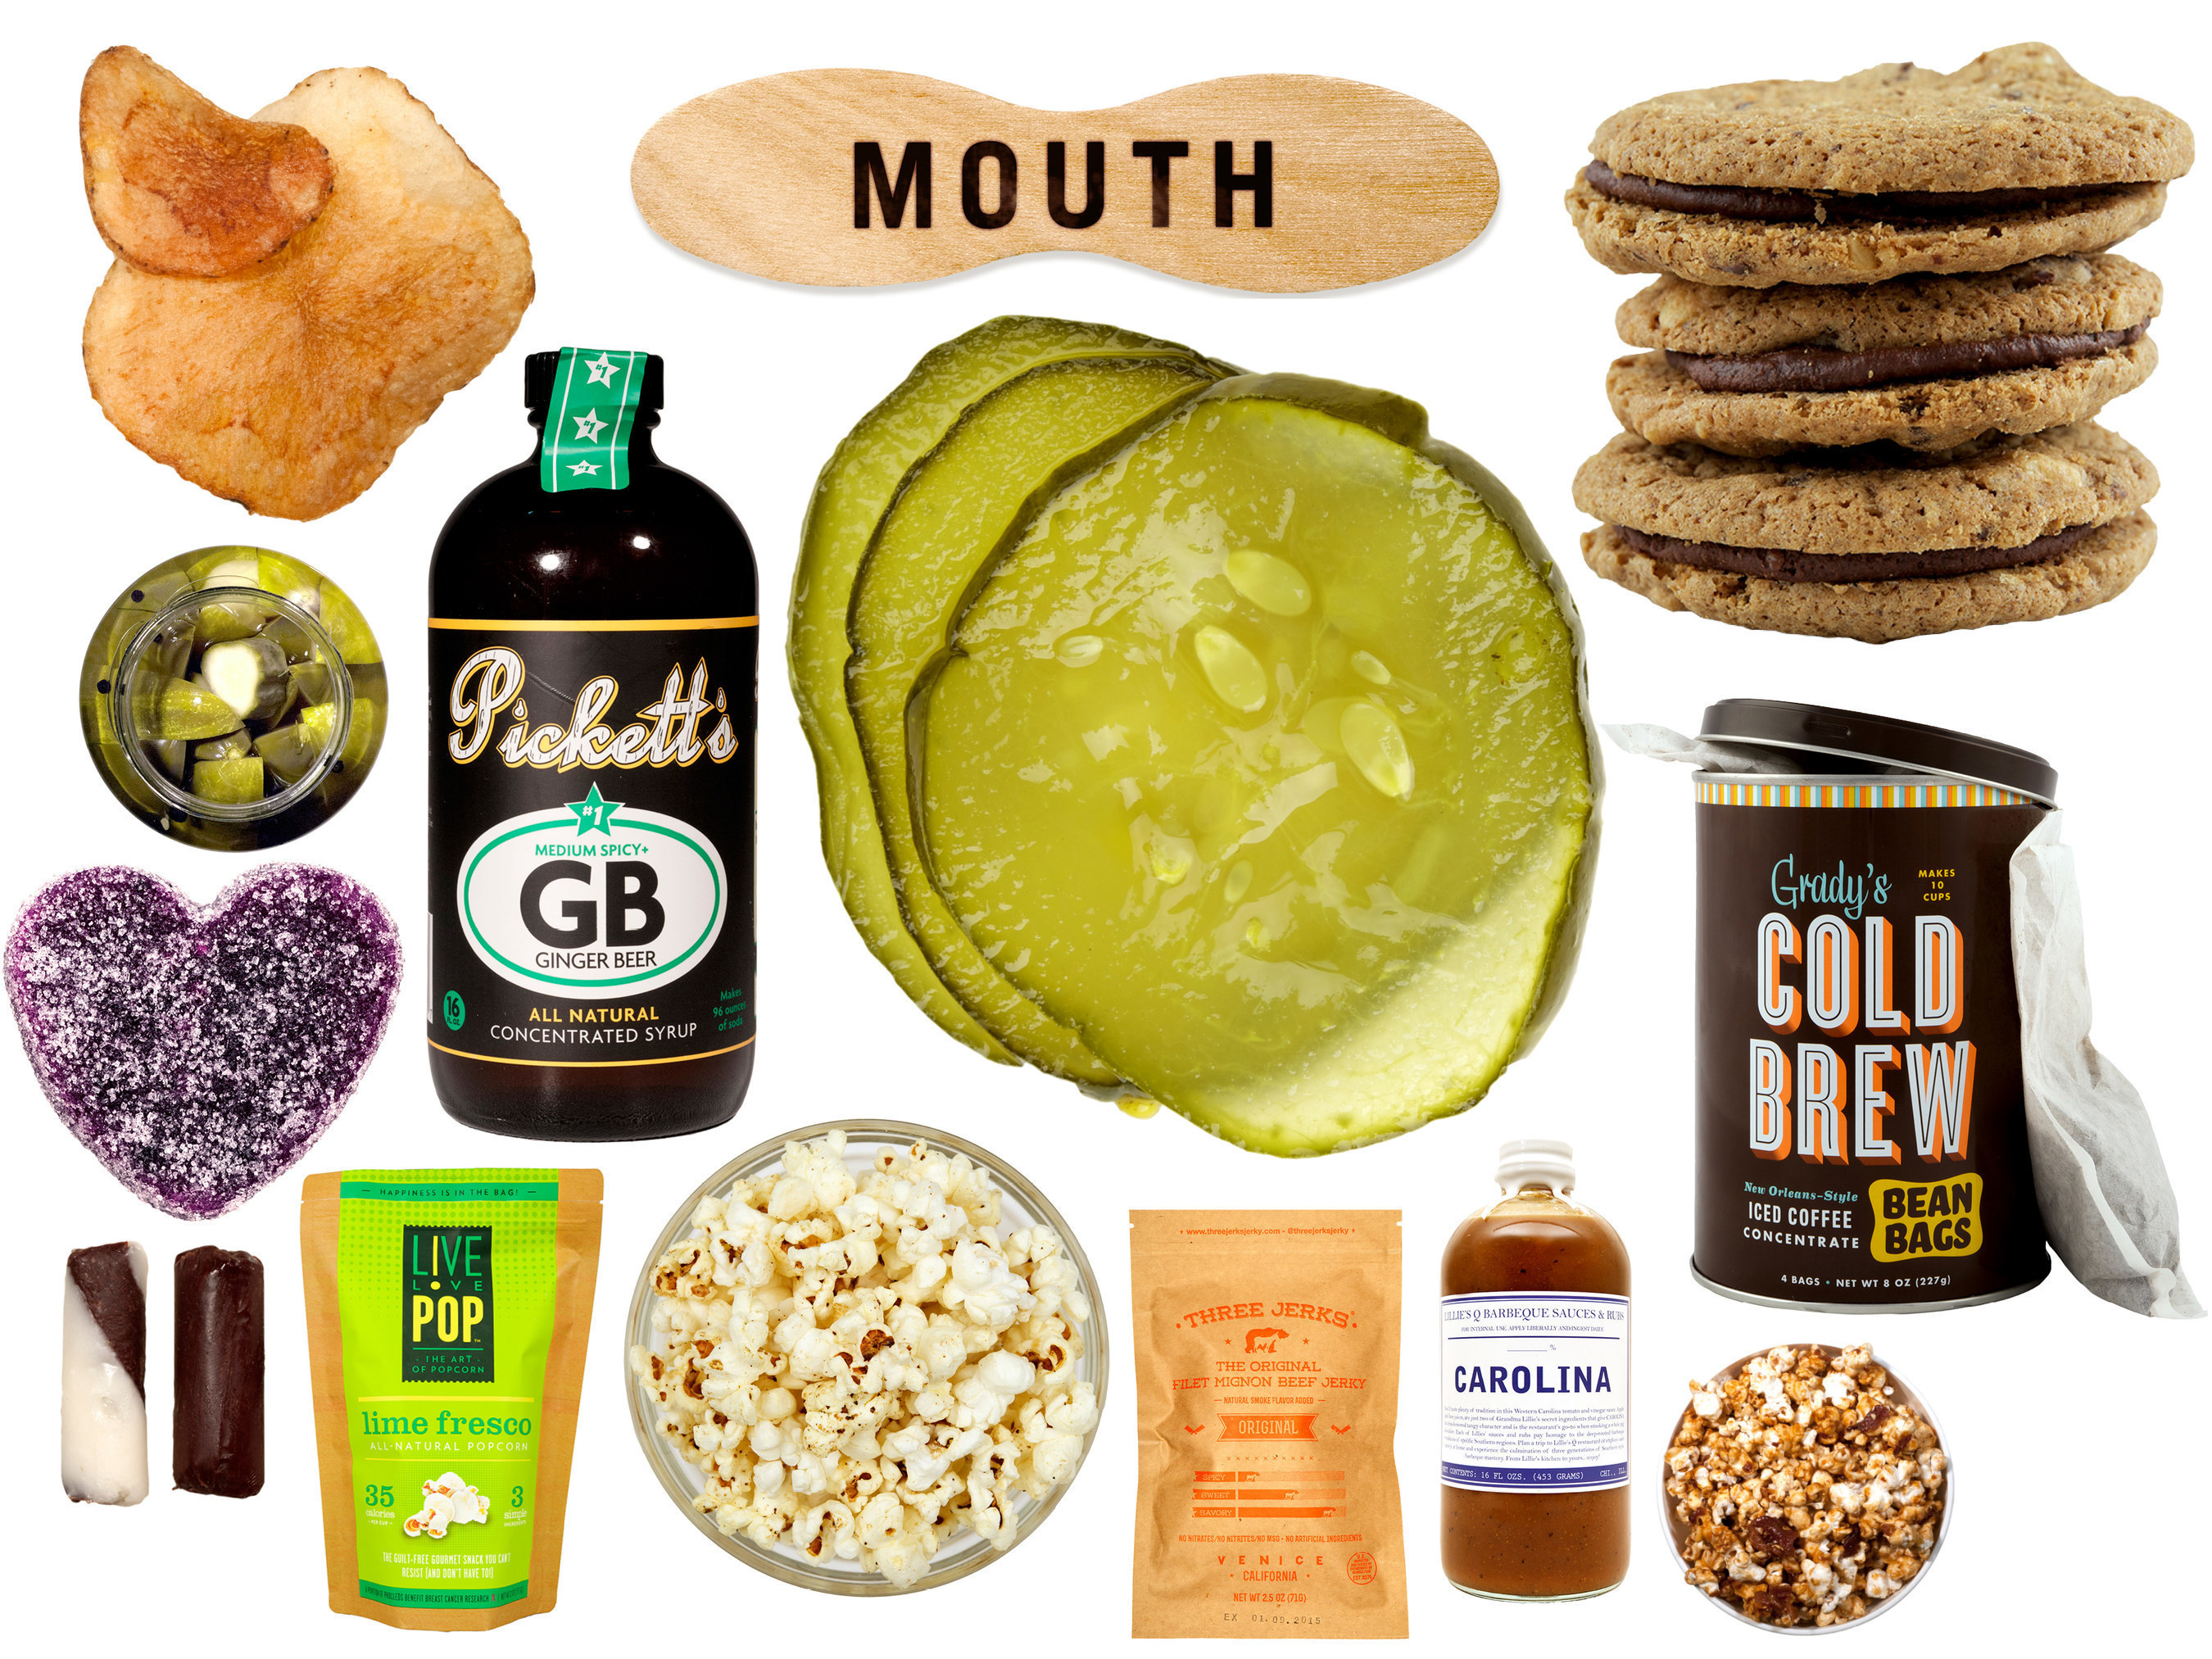 MOUTH - The Ultimate Website For Indie Food And Spirits - Launches Same-Day Delivery In Manhattan And Brooklyn